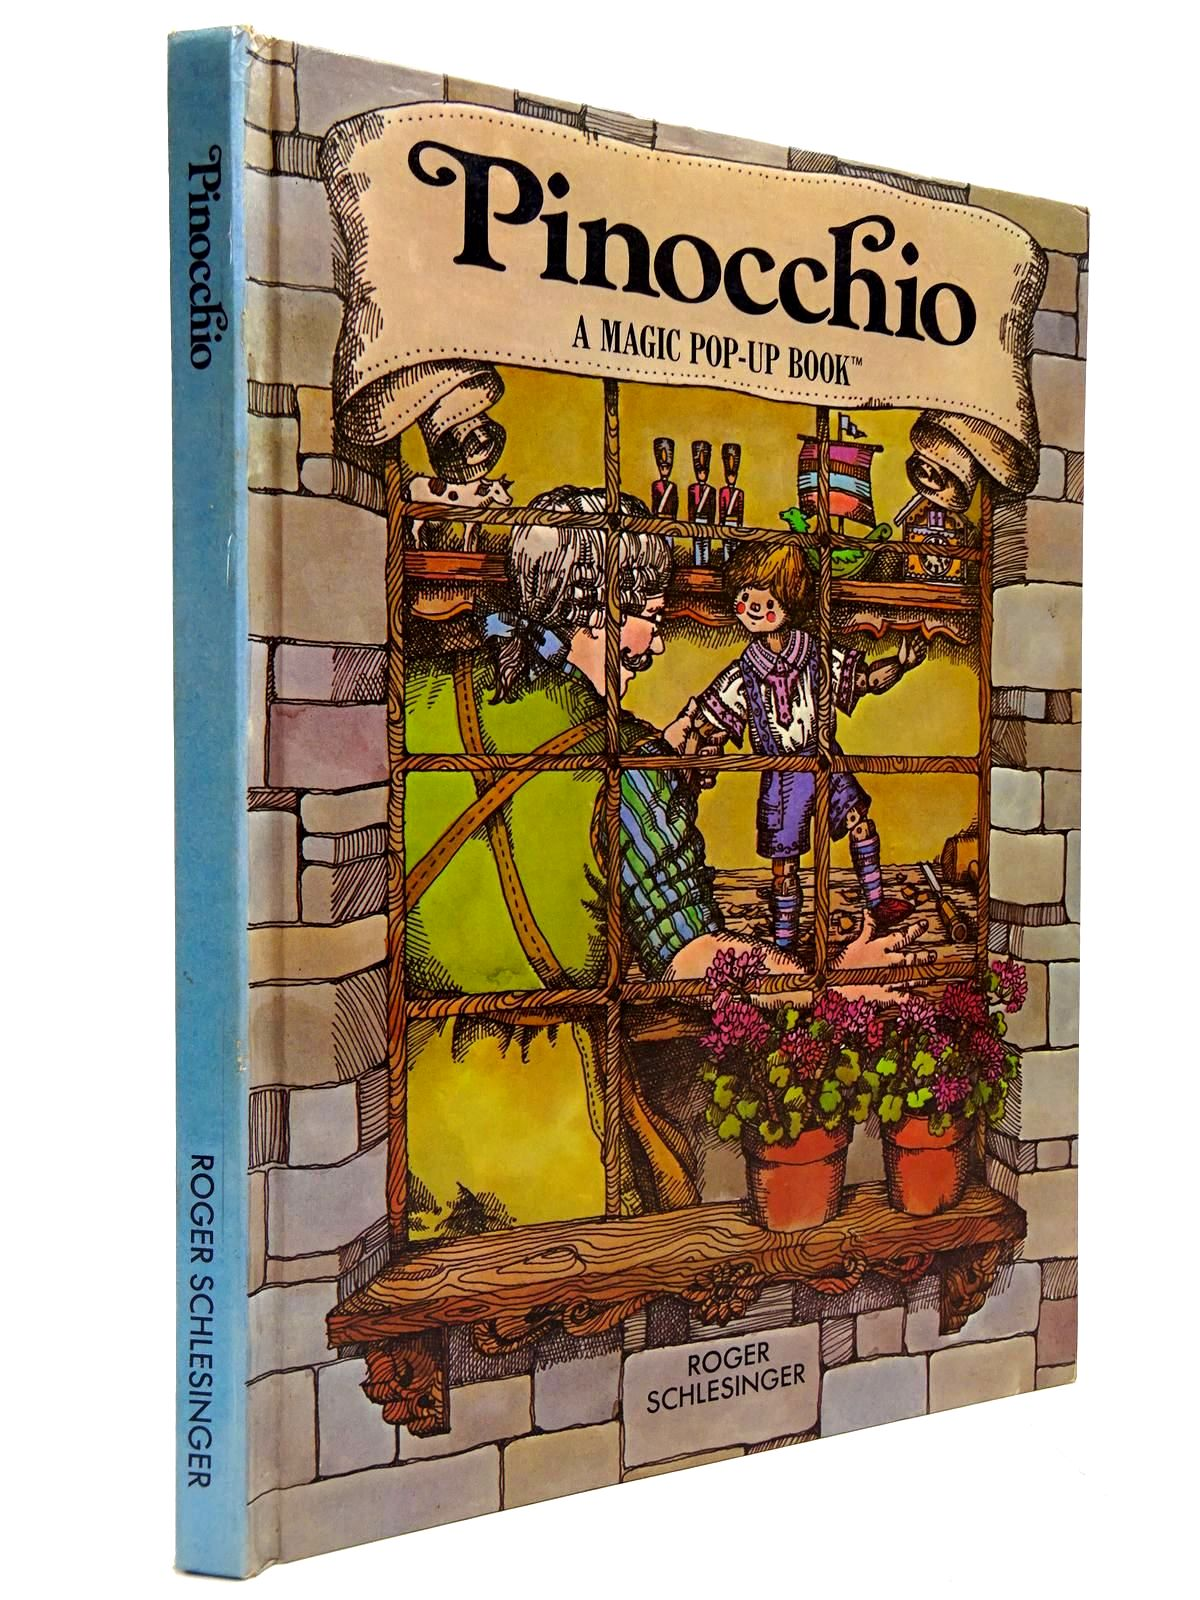 Photo of PINOCCHIO A MAGIC POP-UP BOOK illustrated by Griffith, Linda published by Roger Schlesinger (STOCK CODE: 2130611)  for sale by Stella & Rose's Books